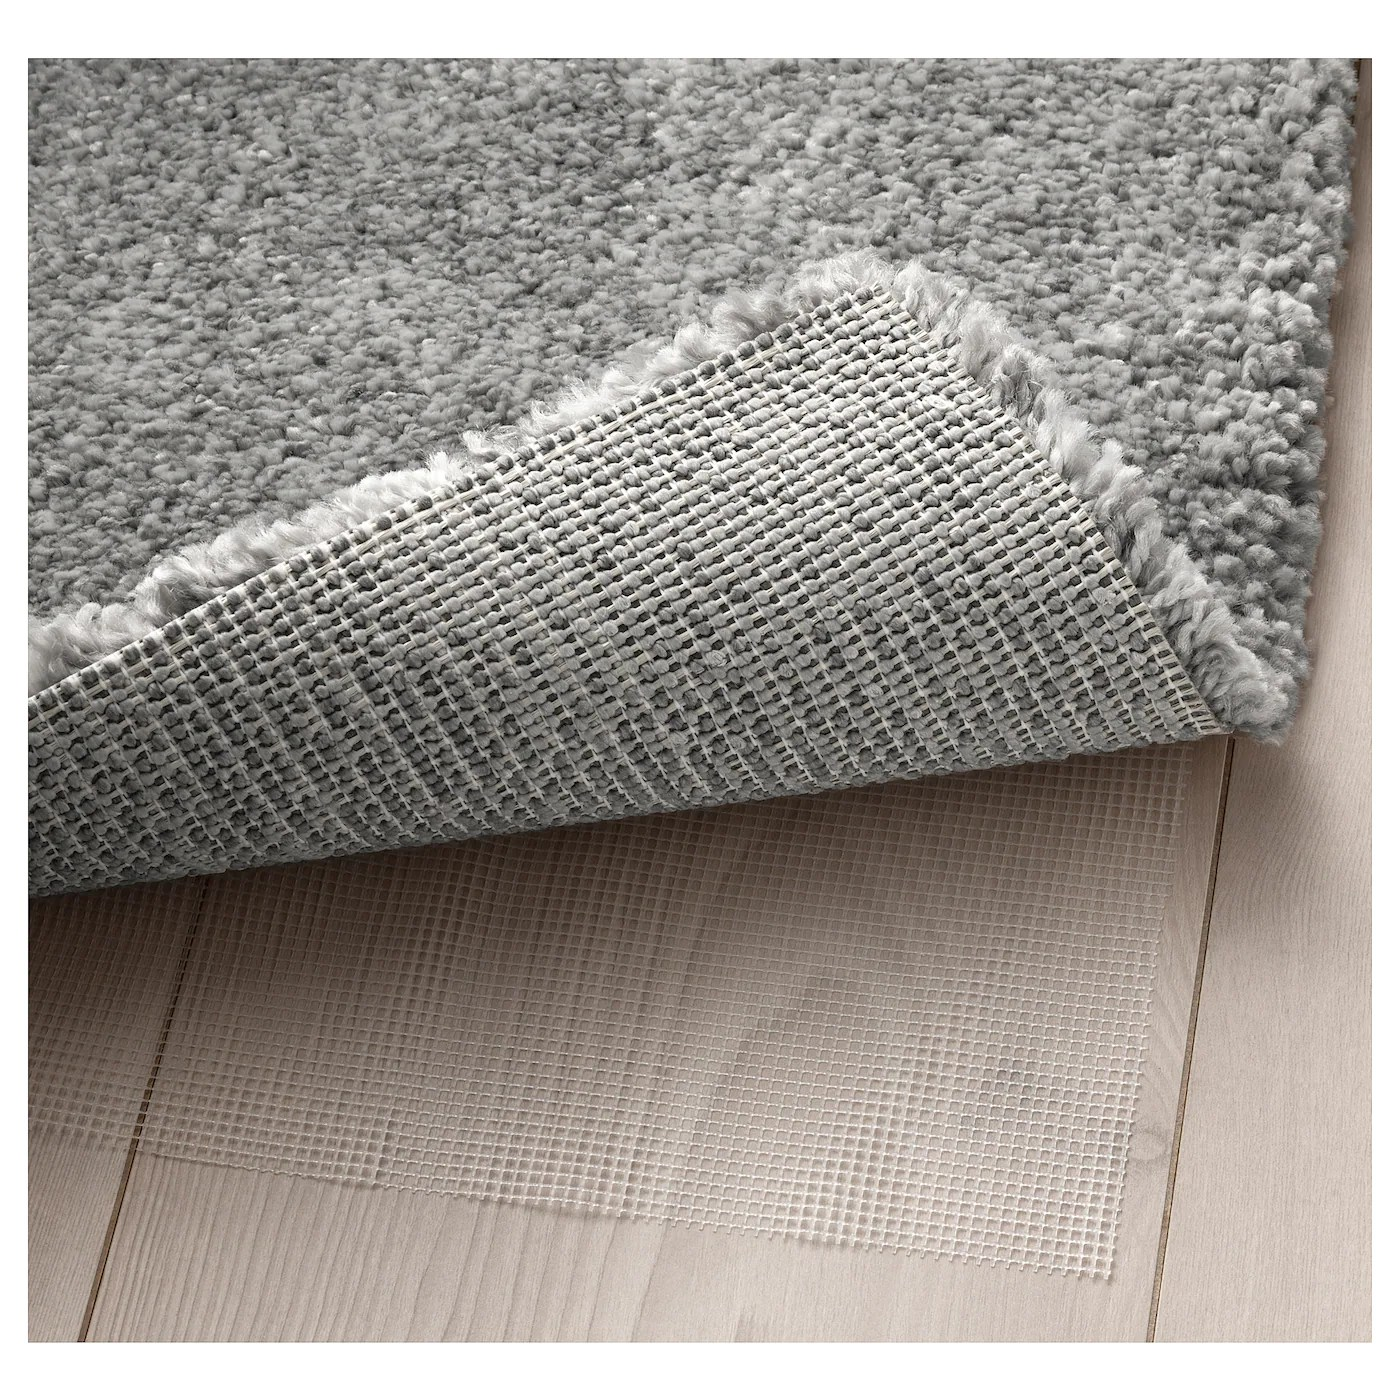 Gaser Teppich Ikea Stoense Rug Low Pile Medium Grey